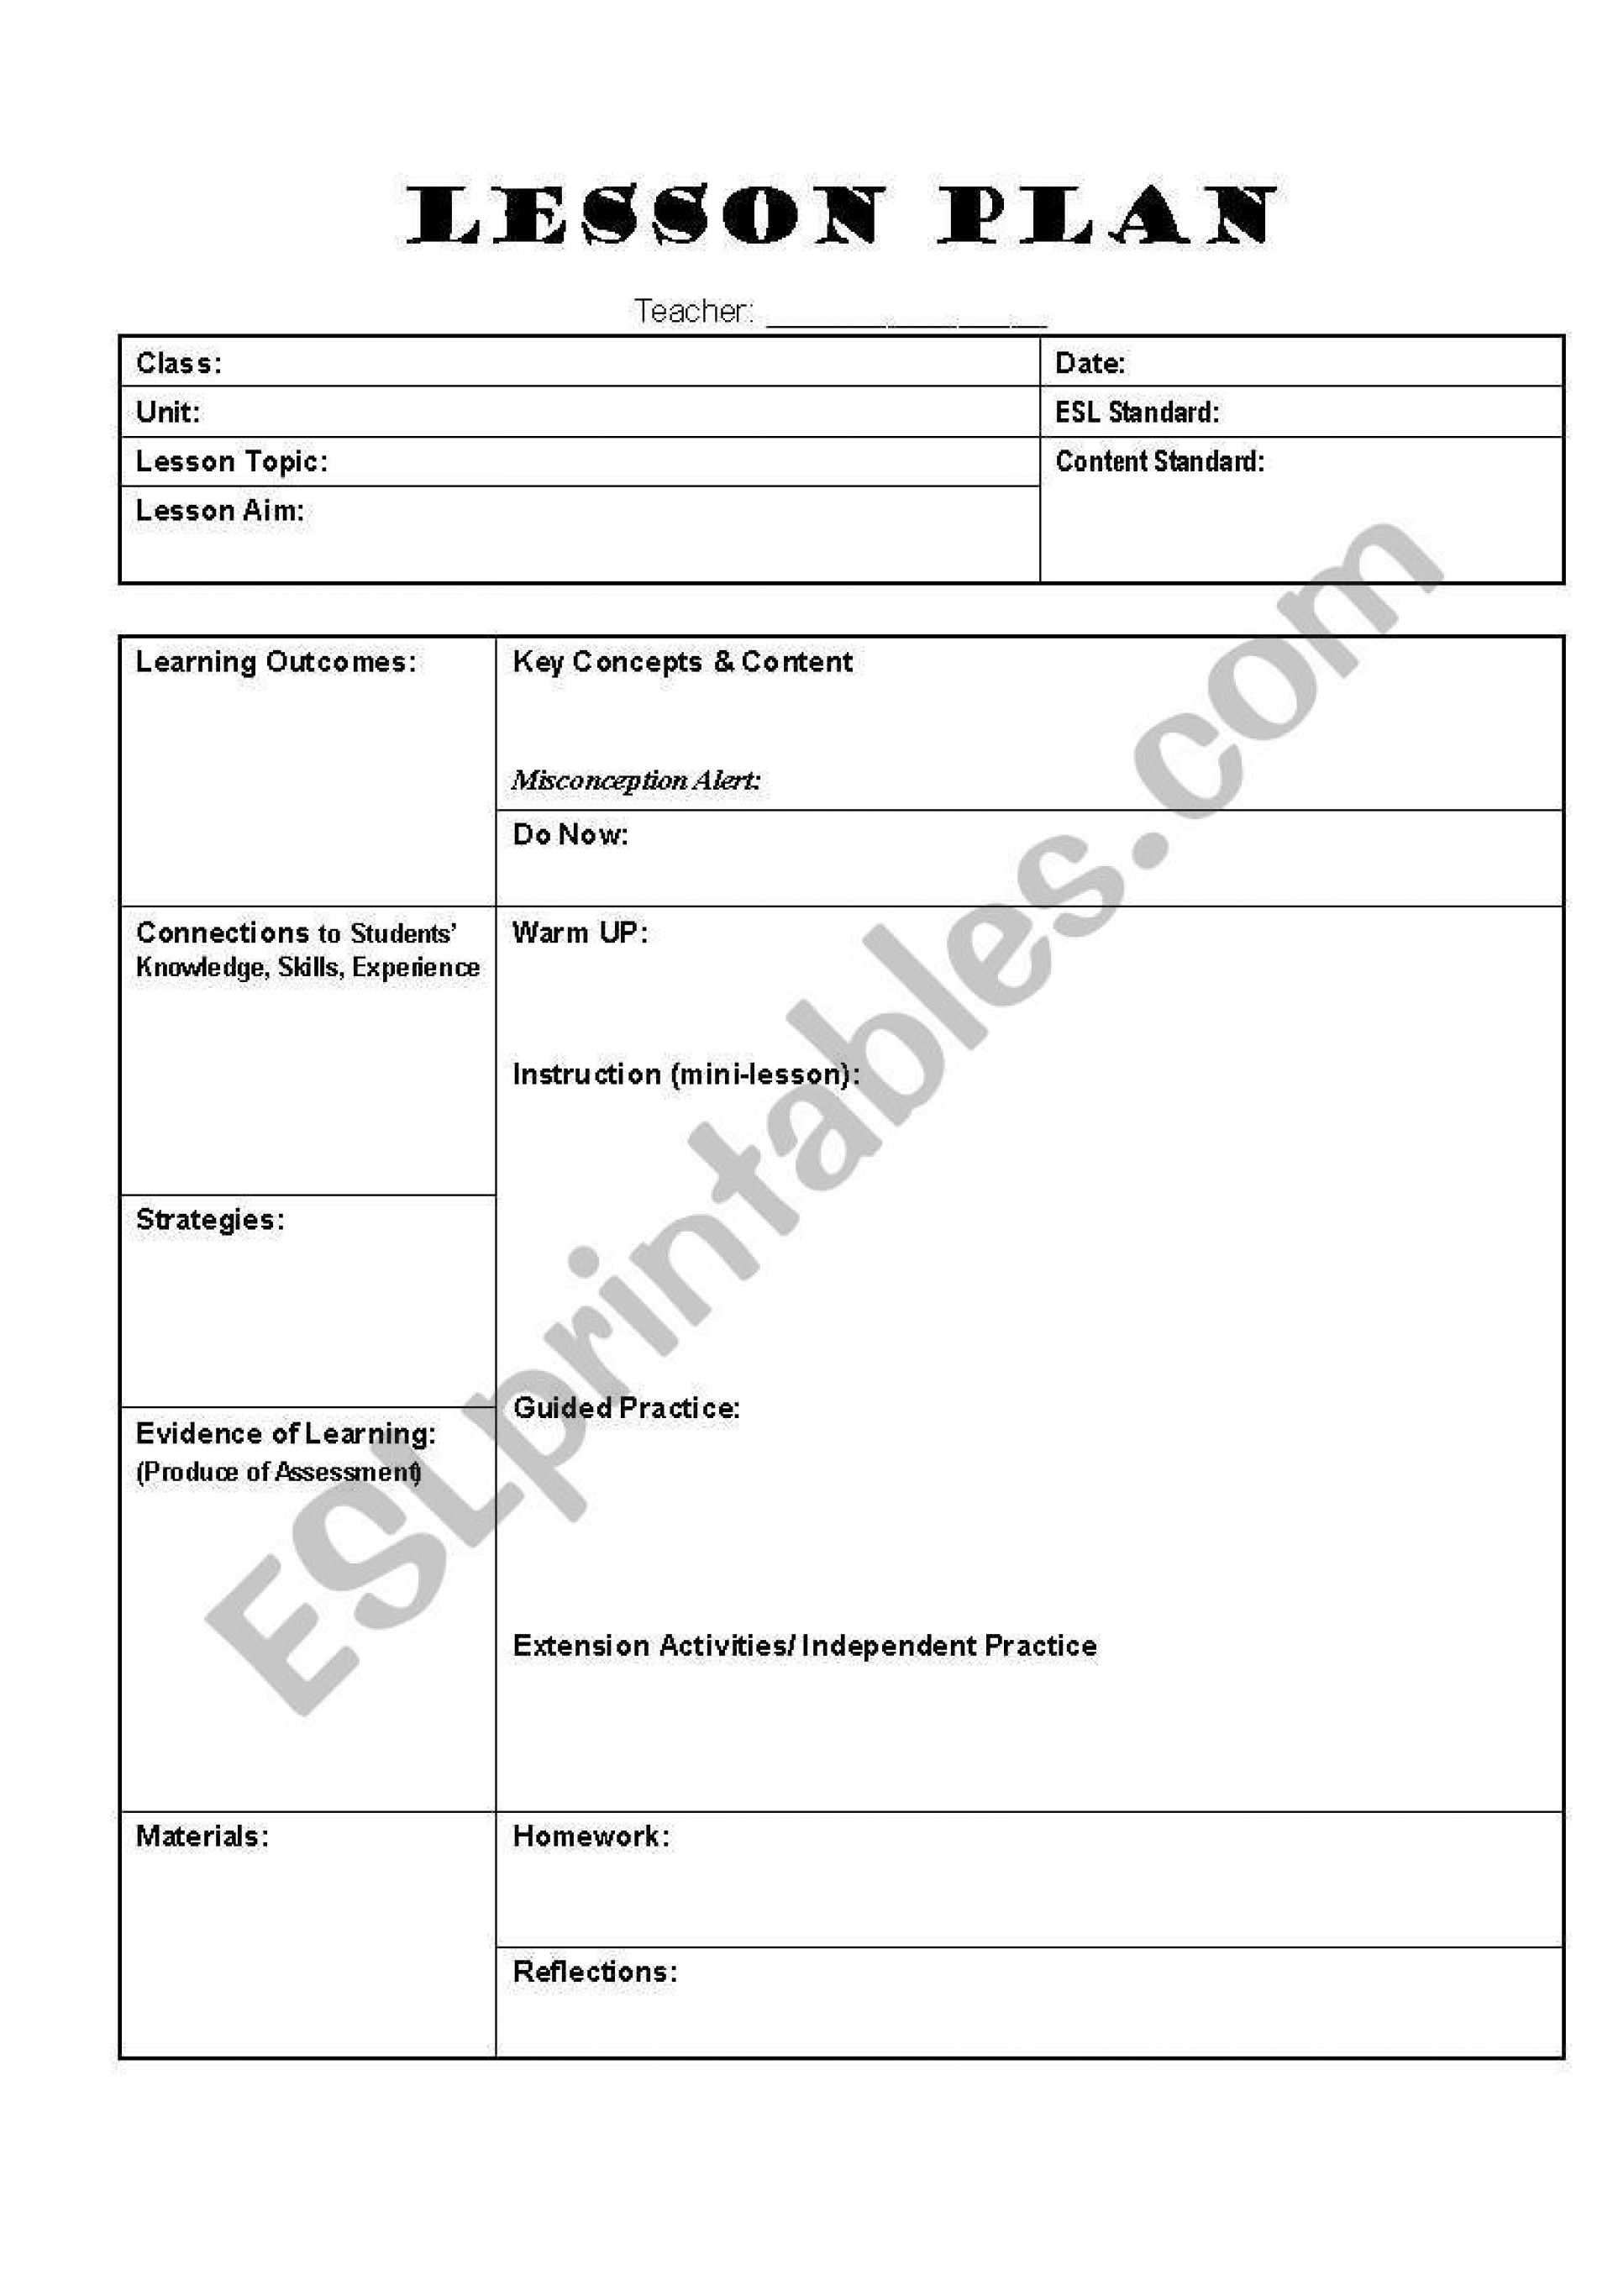 001 Incredible Unit Lesson Plan Template Design  Word Thematic Example Pdf1920